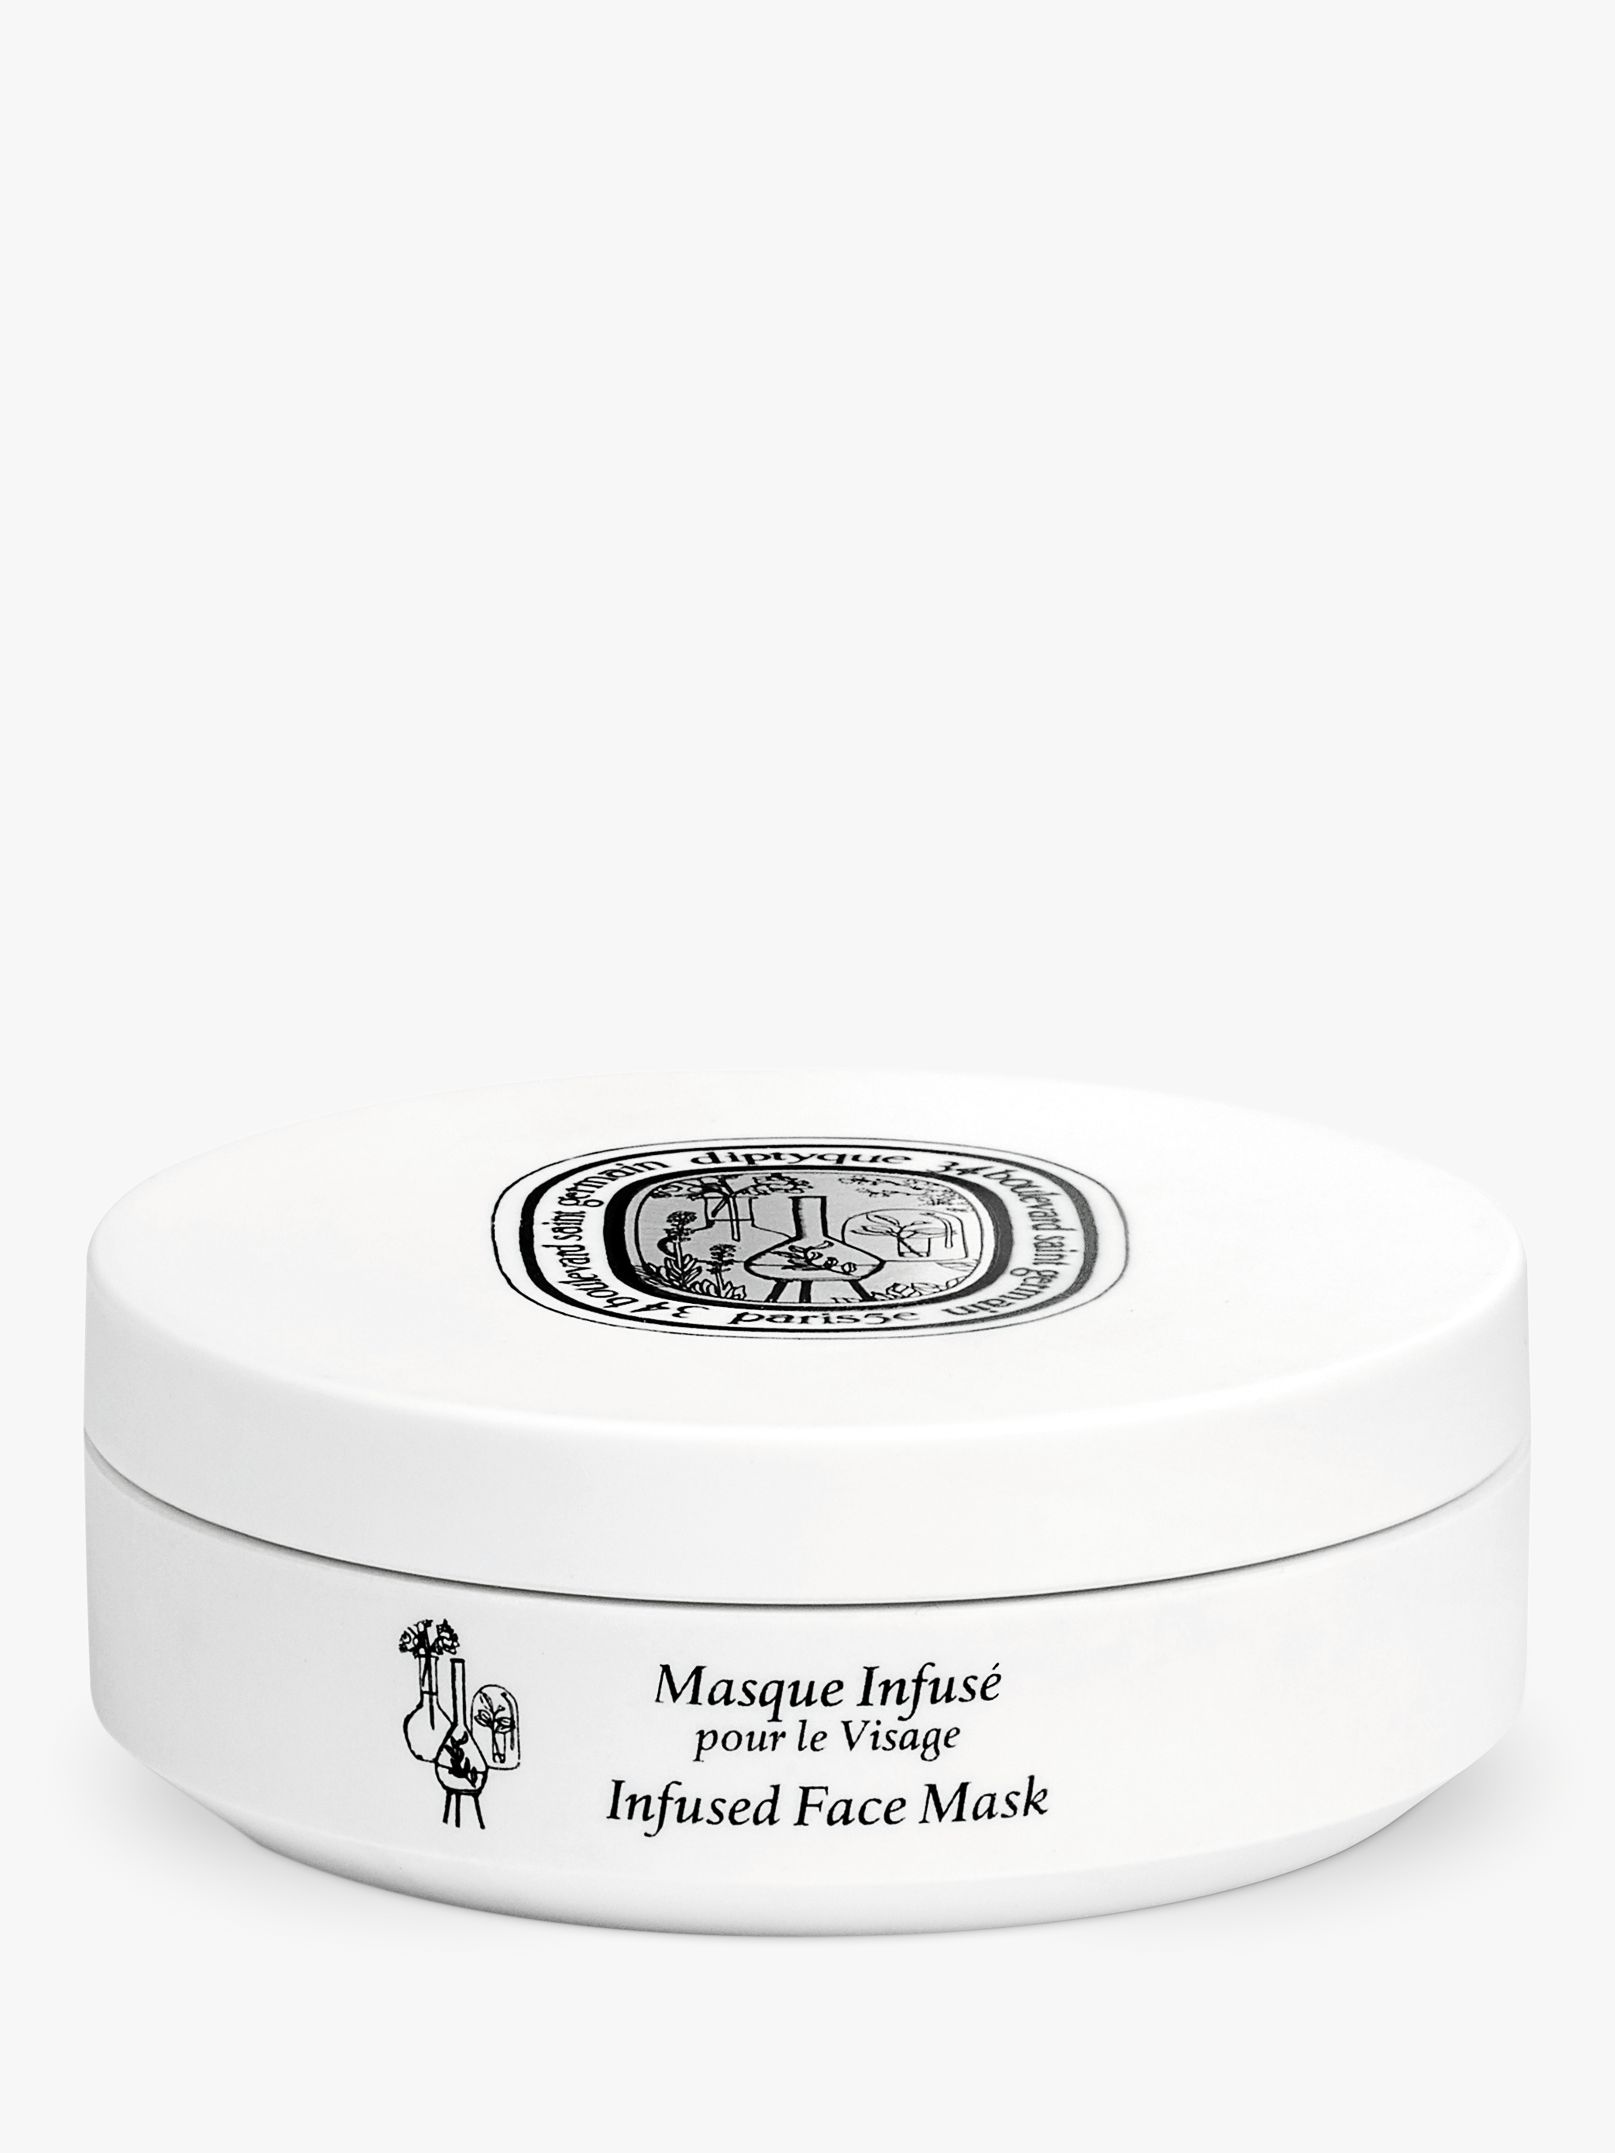 Diptyque Diptyque Infused Face Mask, 50ml